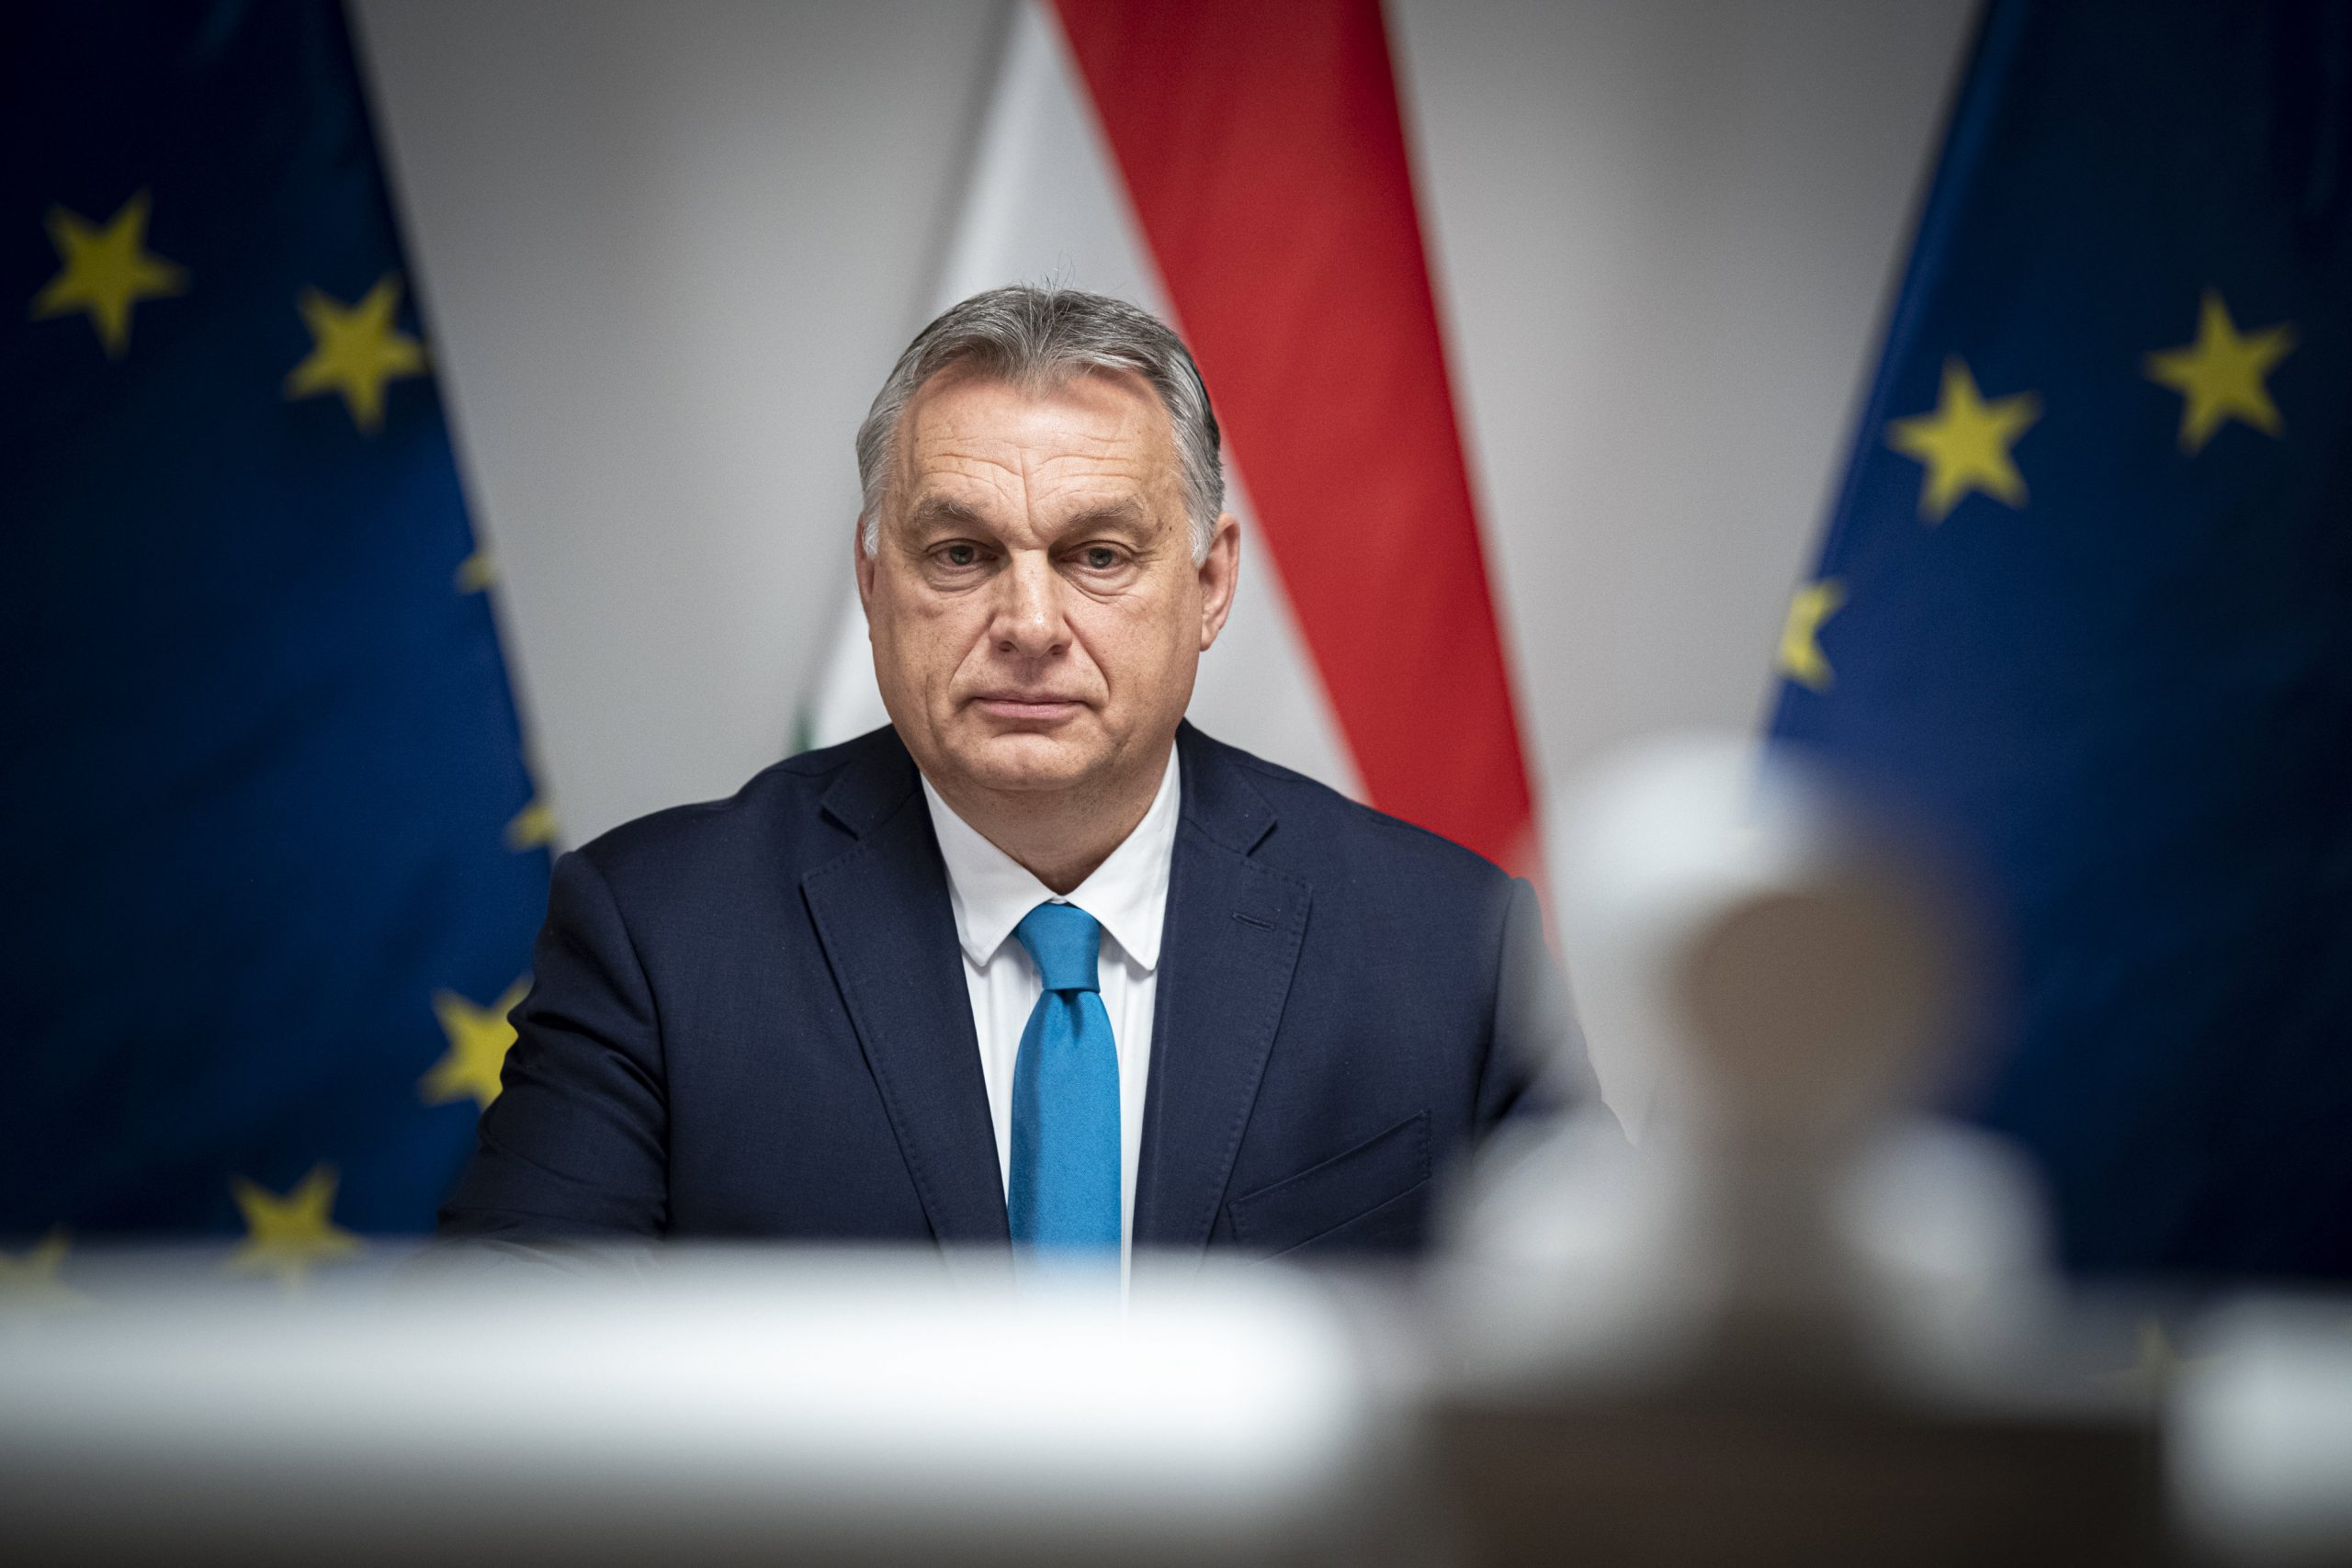 Orbán: Visegrad Group Responsible for Shaping Europe's Future